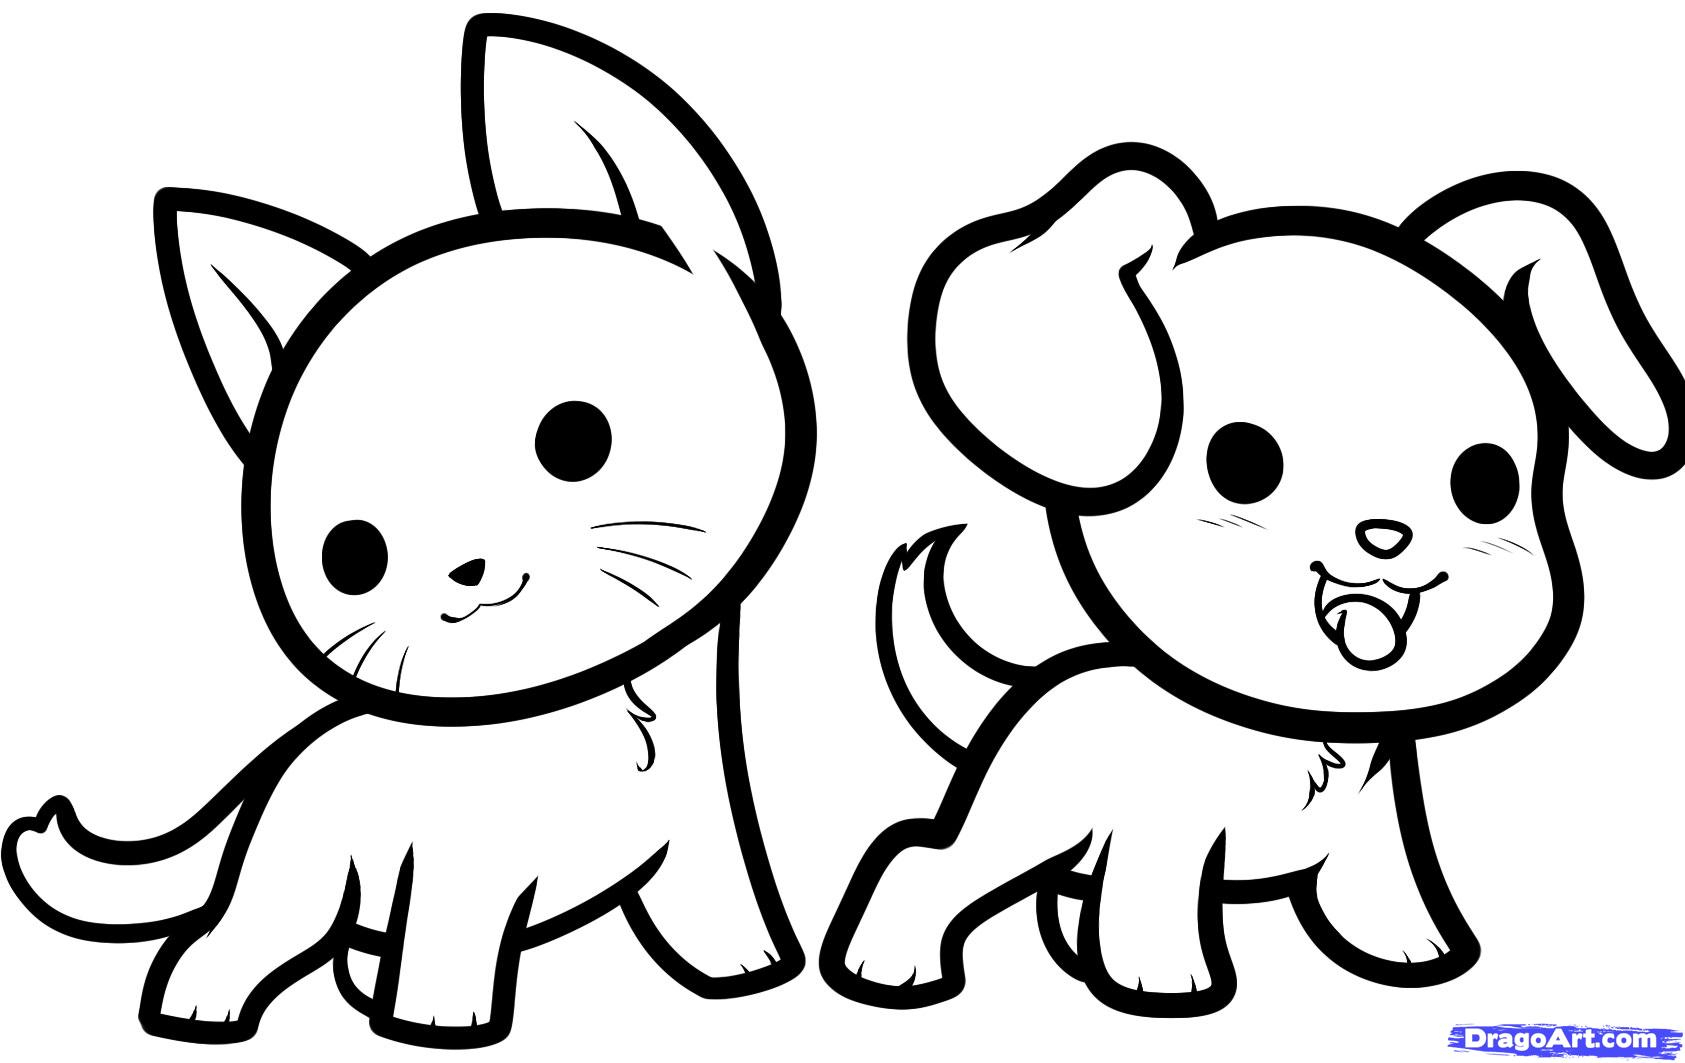 1685x1063 Cute And Easy Animals To Draw